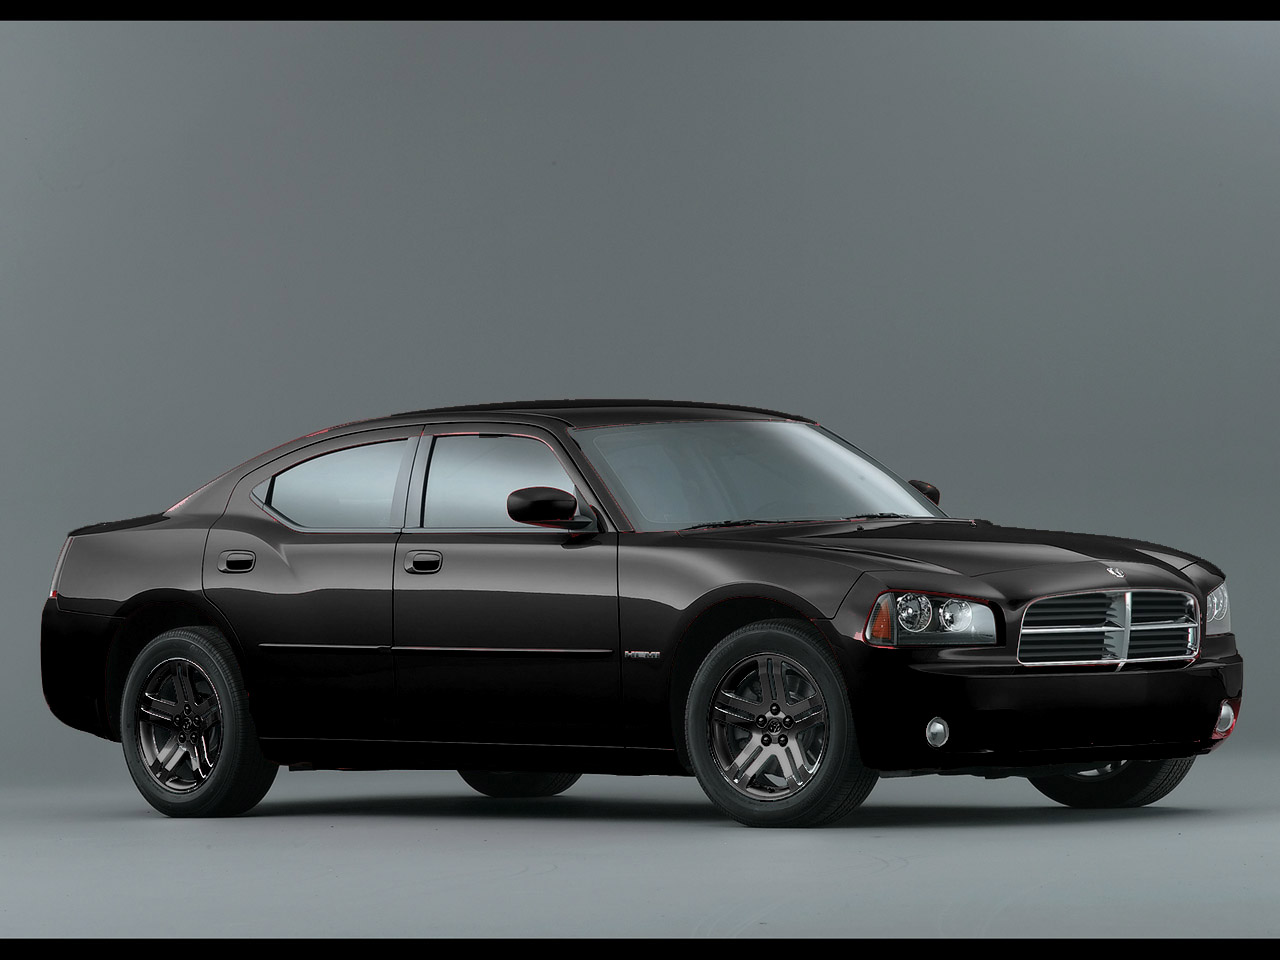 2006 Dodge Charger RT sa black